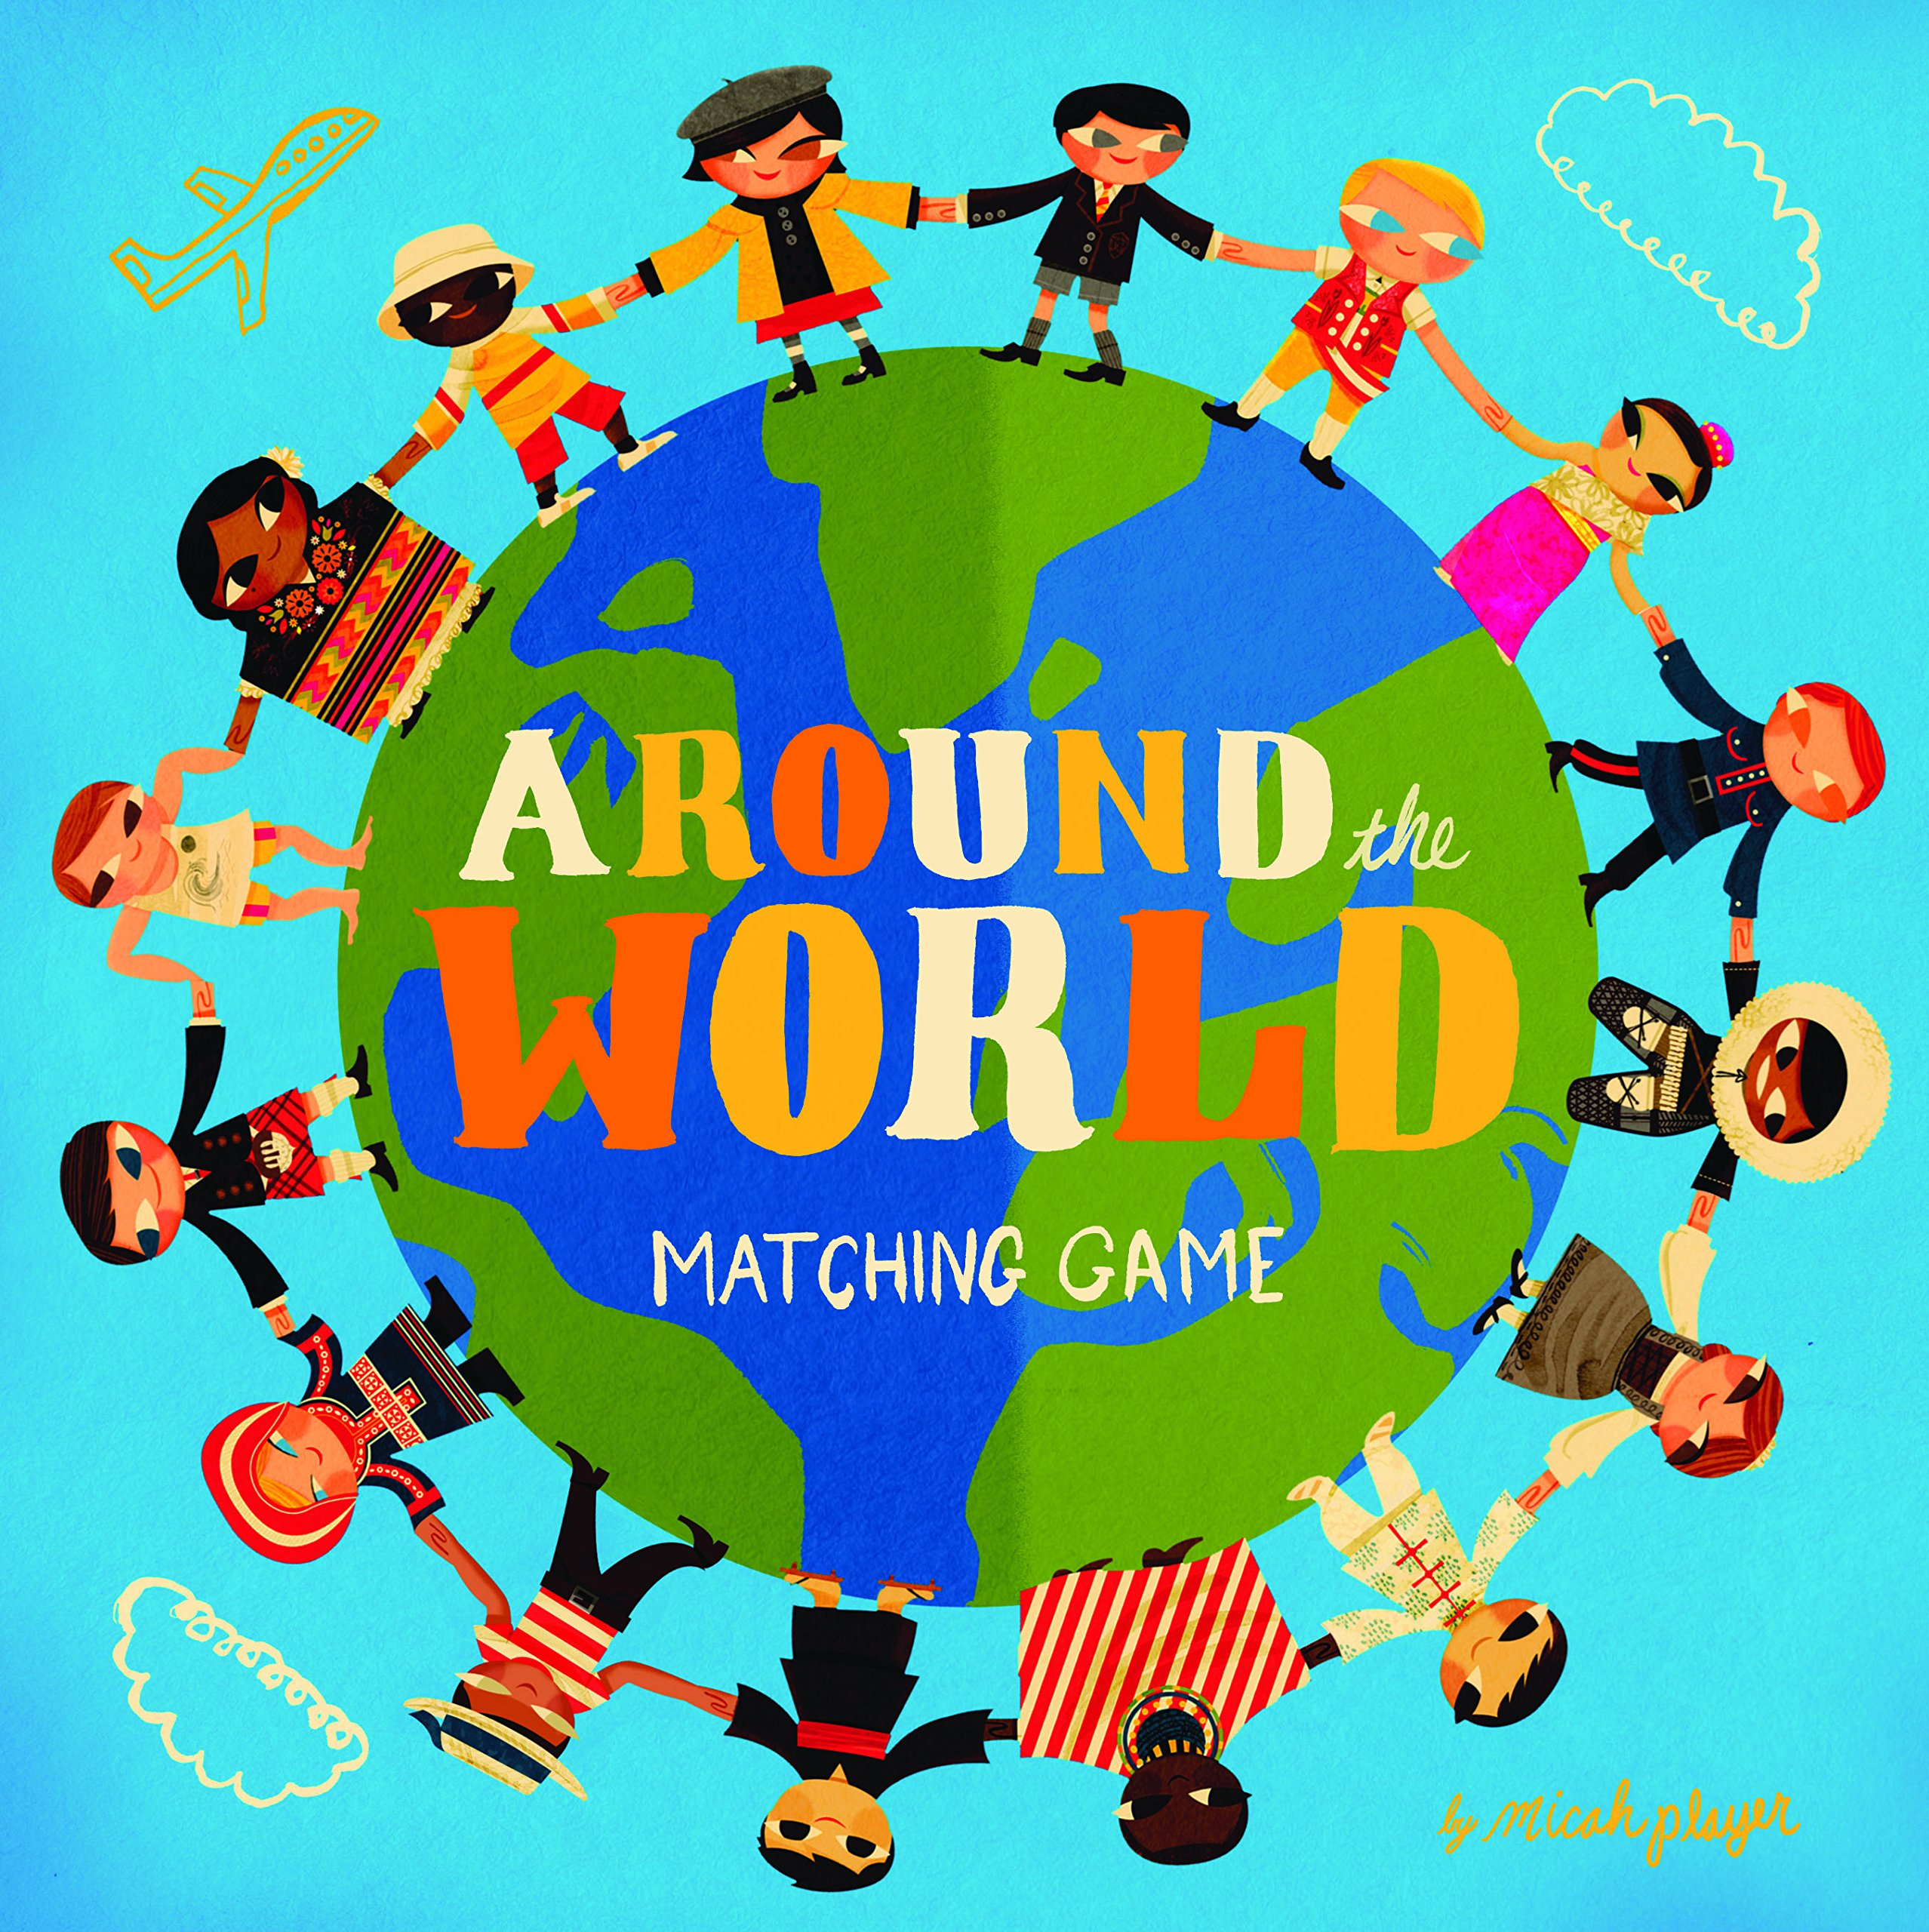 d2e49d5f40ff9 Around the World Matching Game: Micah Player: 9781452116990: Amazon ...